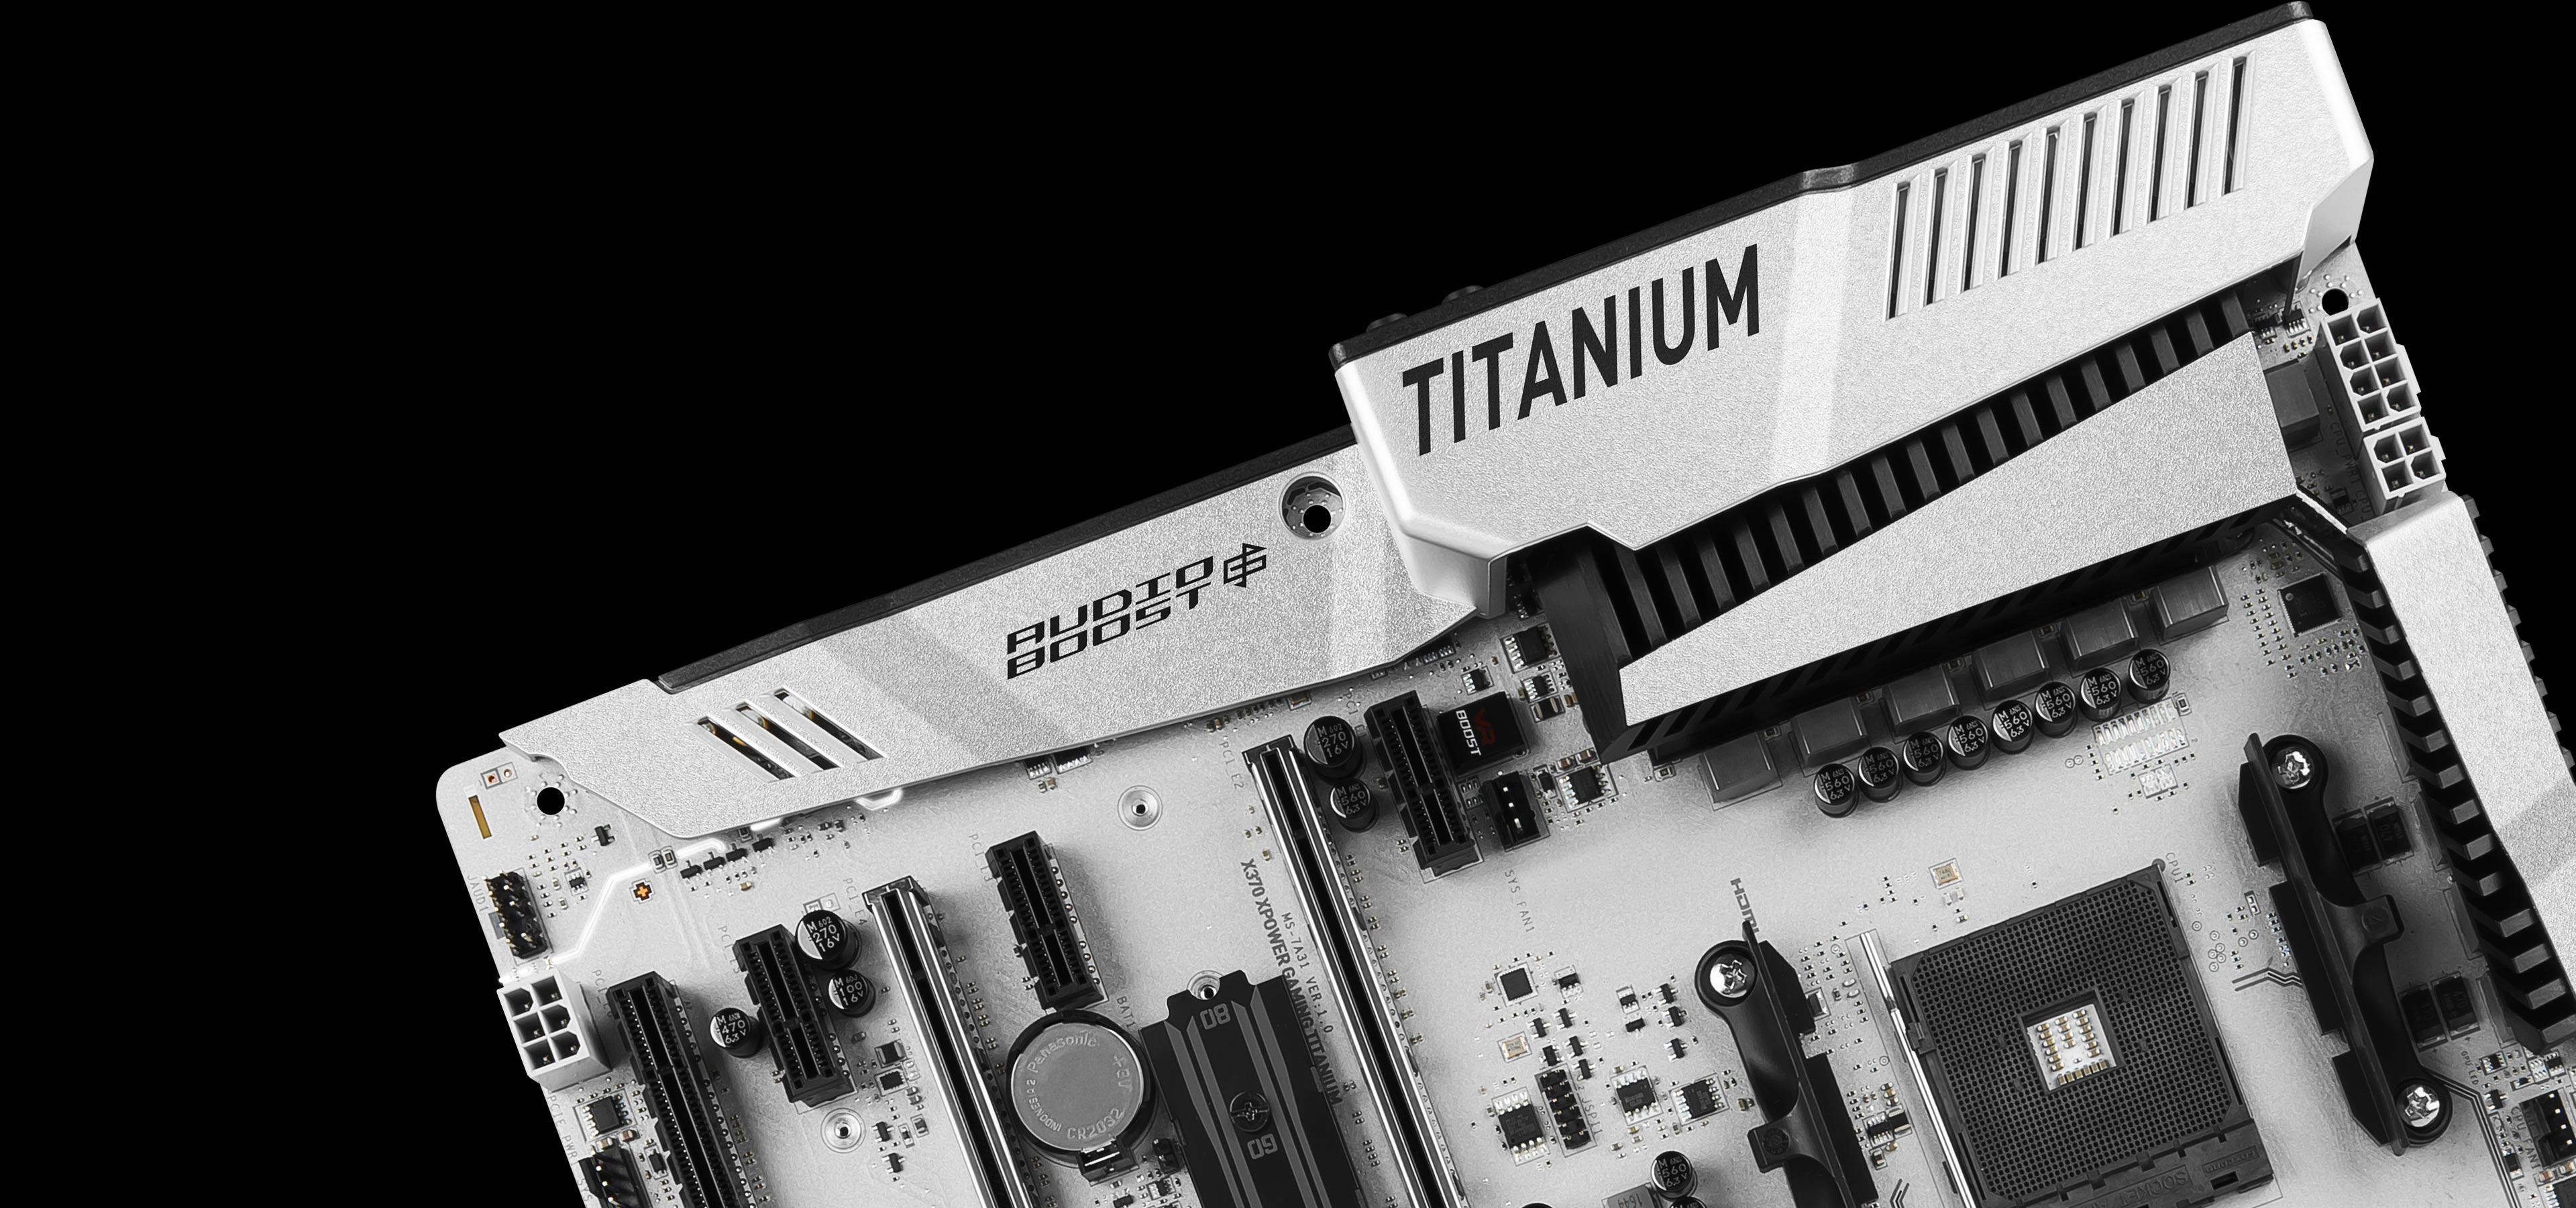 X370 Xpower Gaming Titanium Motherboard The World Leader In There Are 2 Boards Main Board And A Second One For Controls Rigorous Quality Testing Under Most Extreme Conditions Ensures Super Reliable High Performance